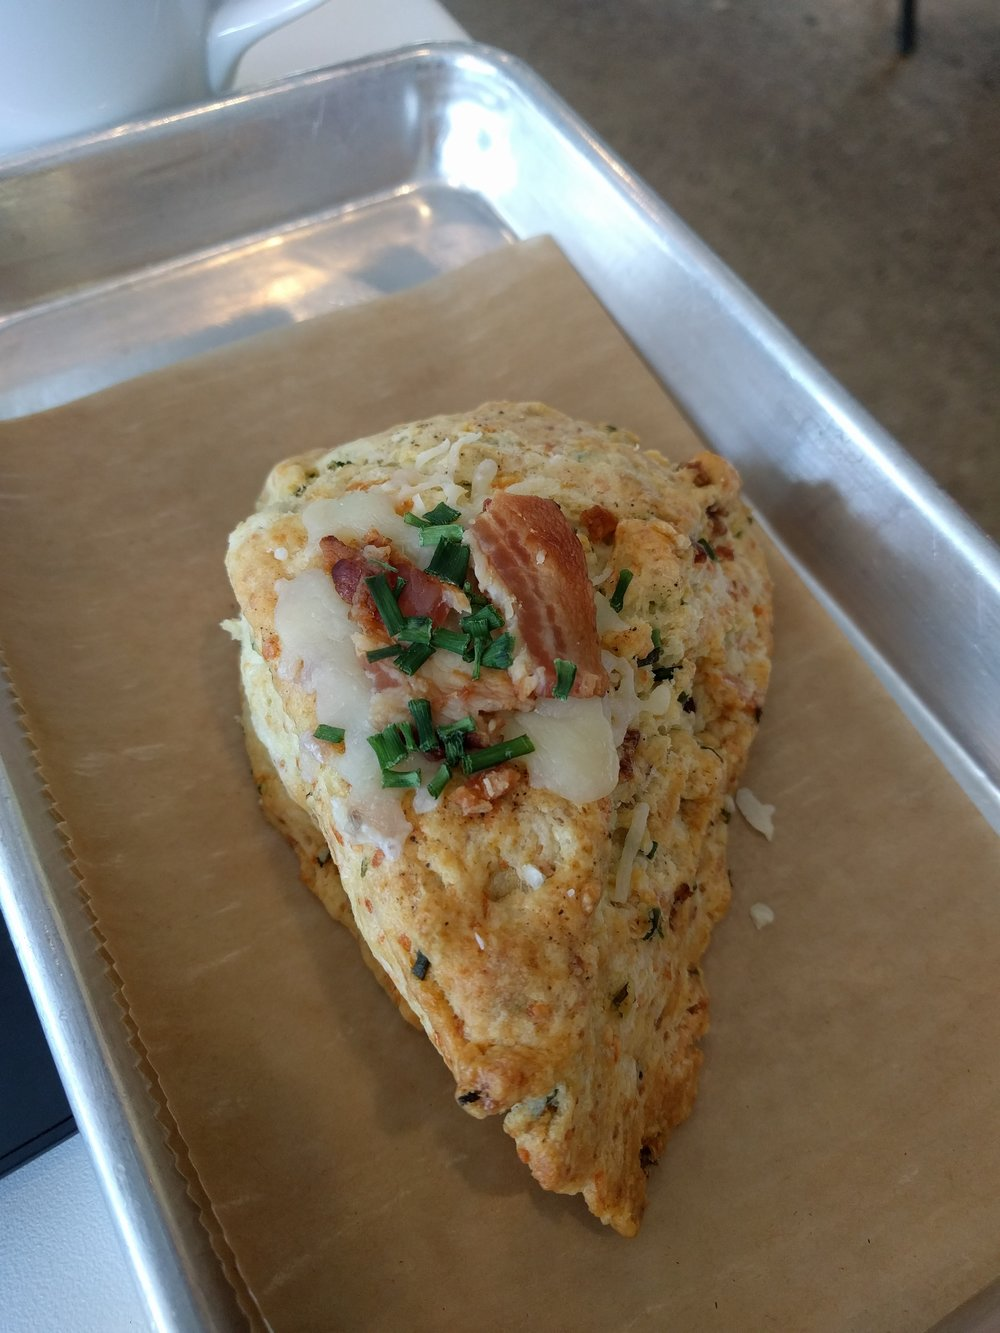 Cheddar, bacon, and chive scone from That Early Bird